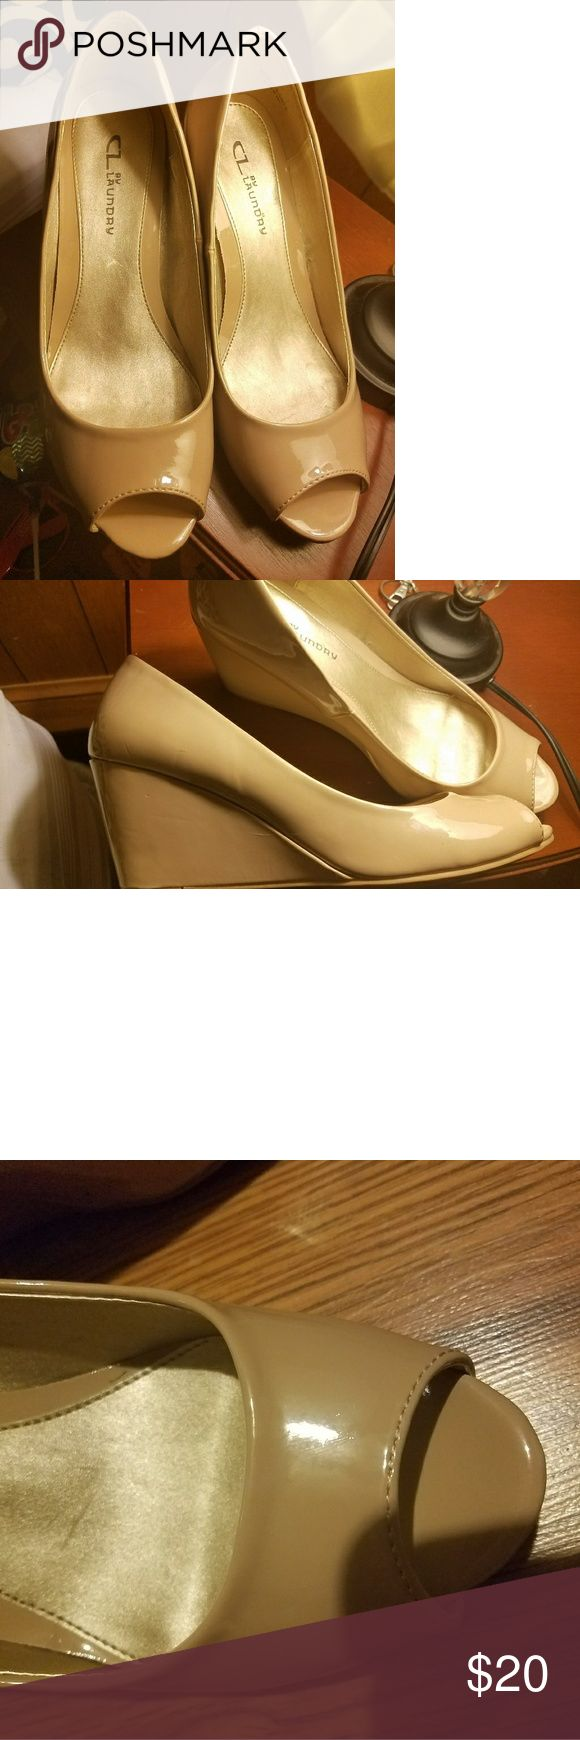 Chinese Laundry wedge pump nude Beautiful like new Chinese Laundry Nichelle wedge pump nude sz 9.5. Chinese Laundry Shoes Wedges